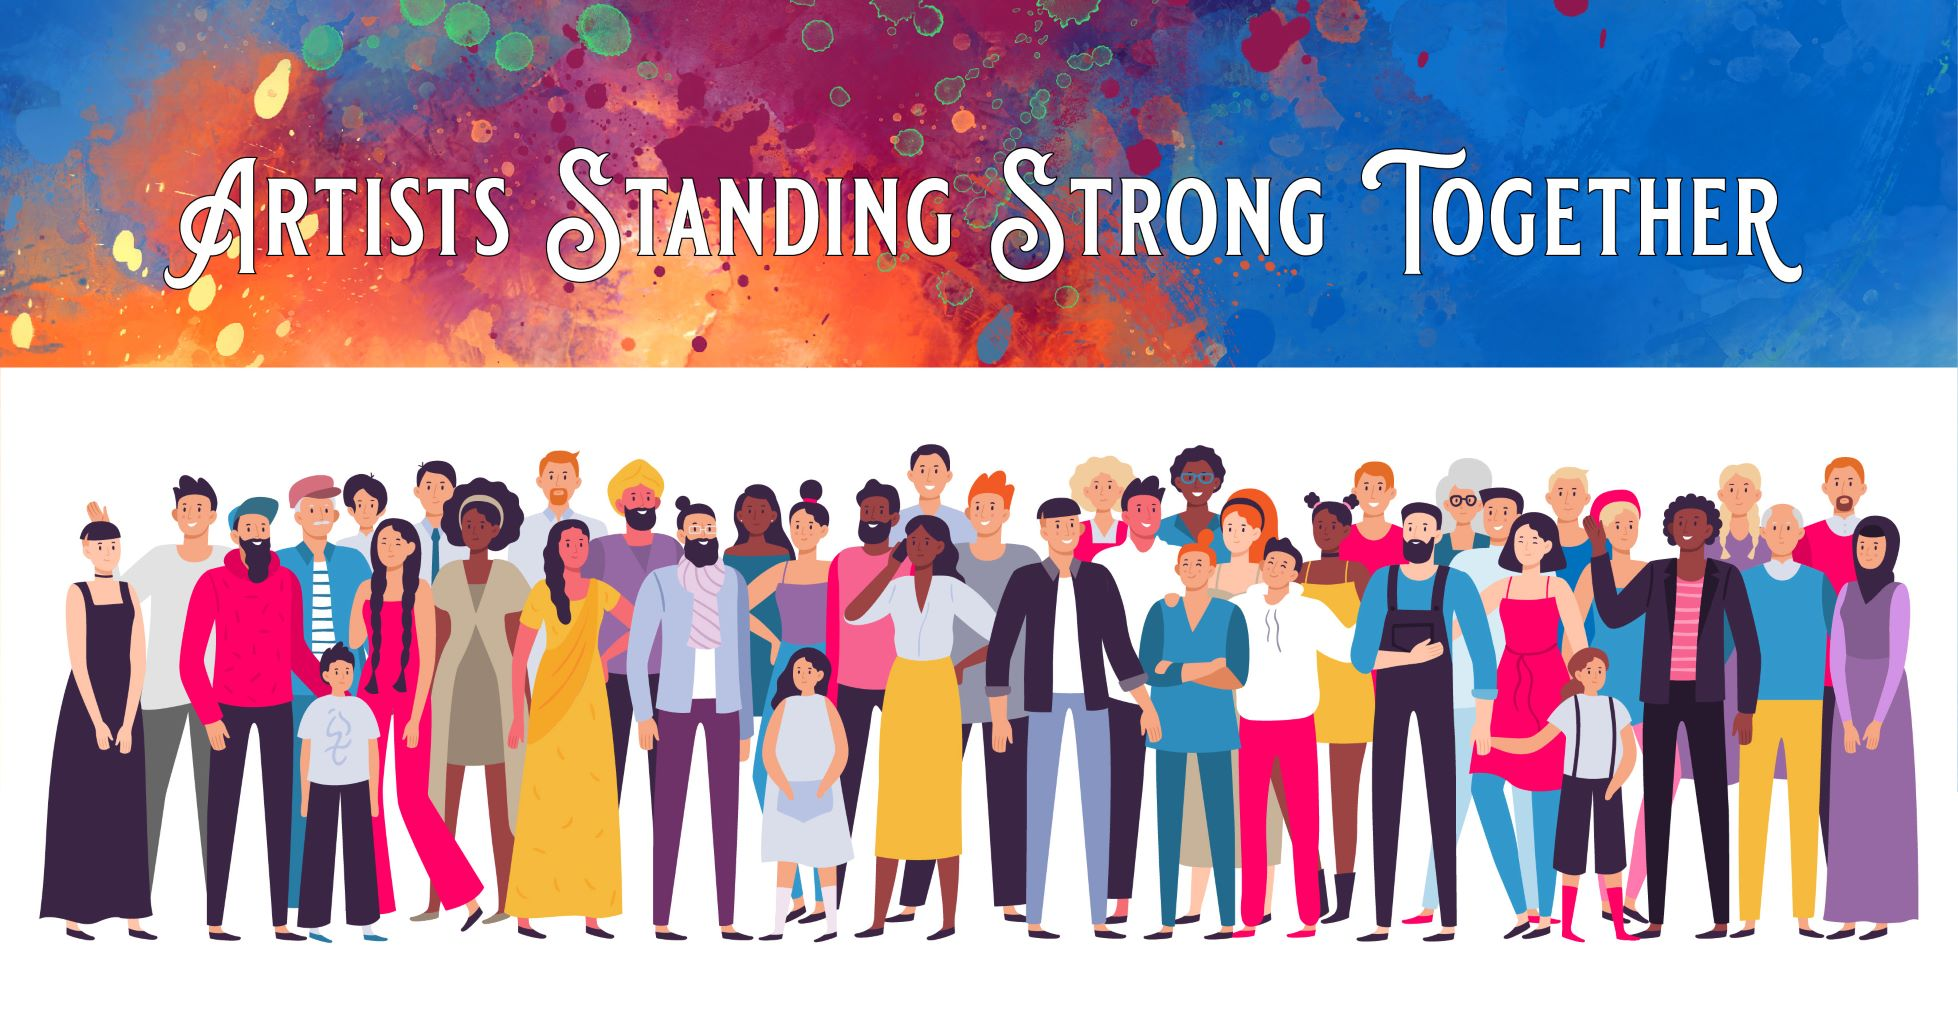 Artists Standing Strong Together